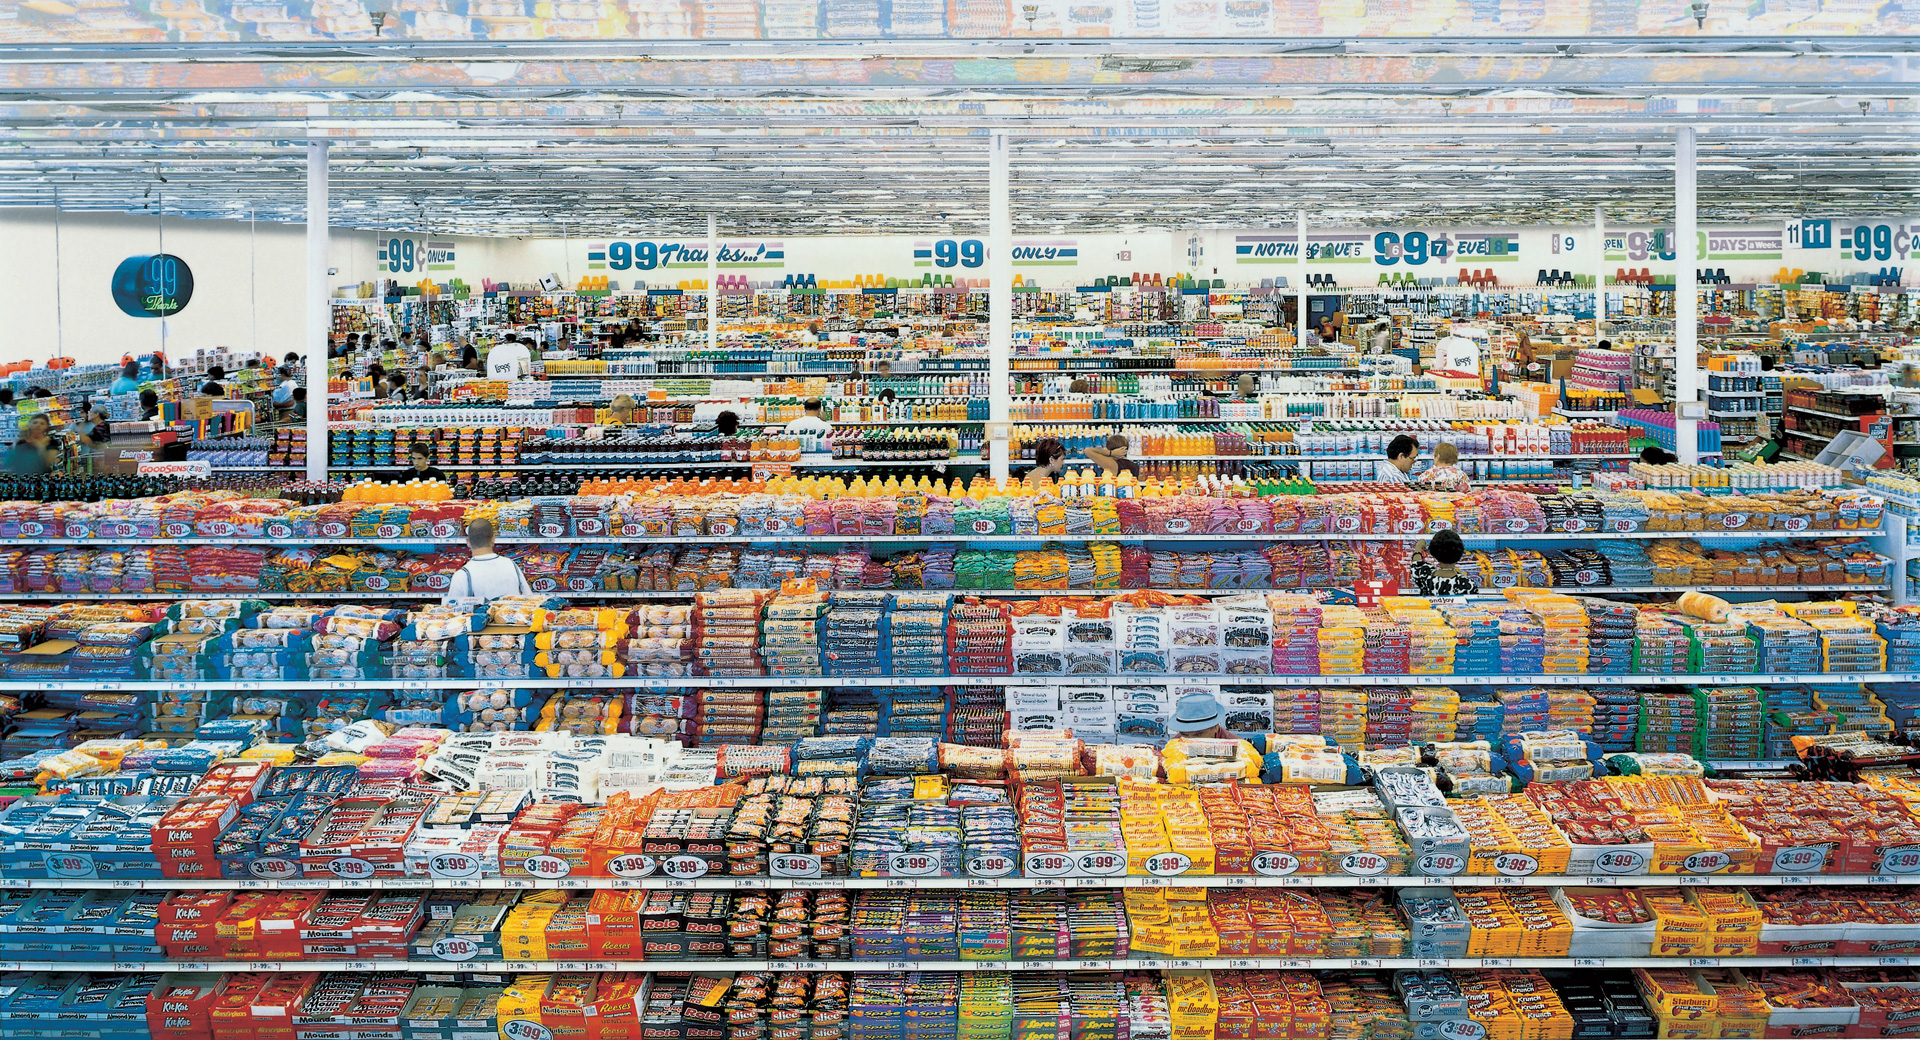 Art Store 99 Cent Andreas Gursky The Broad